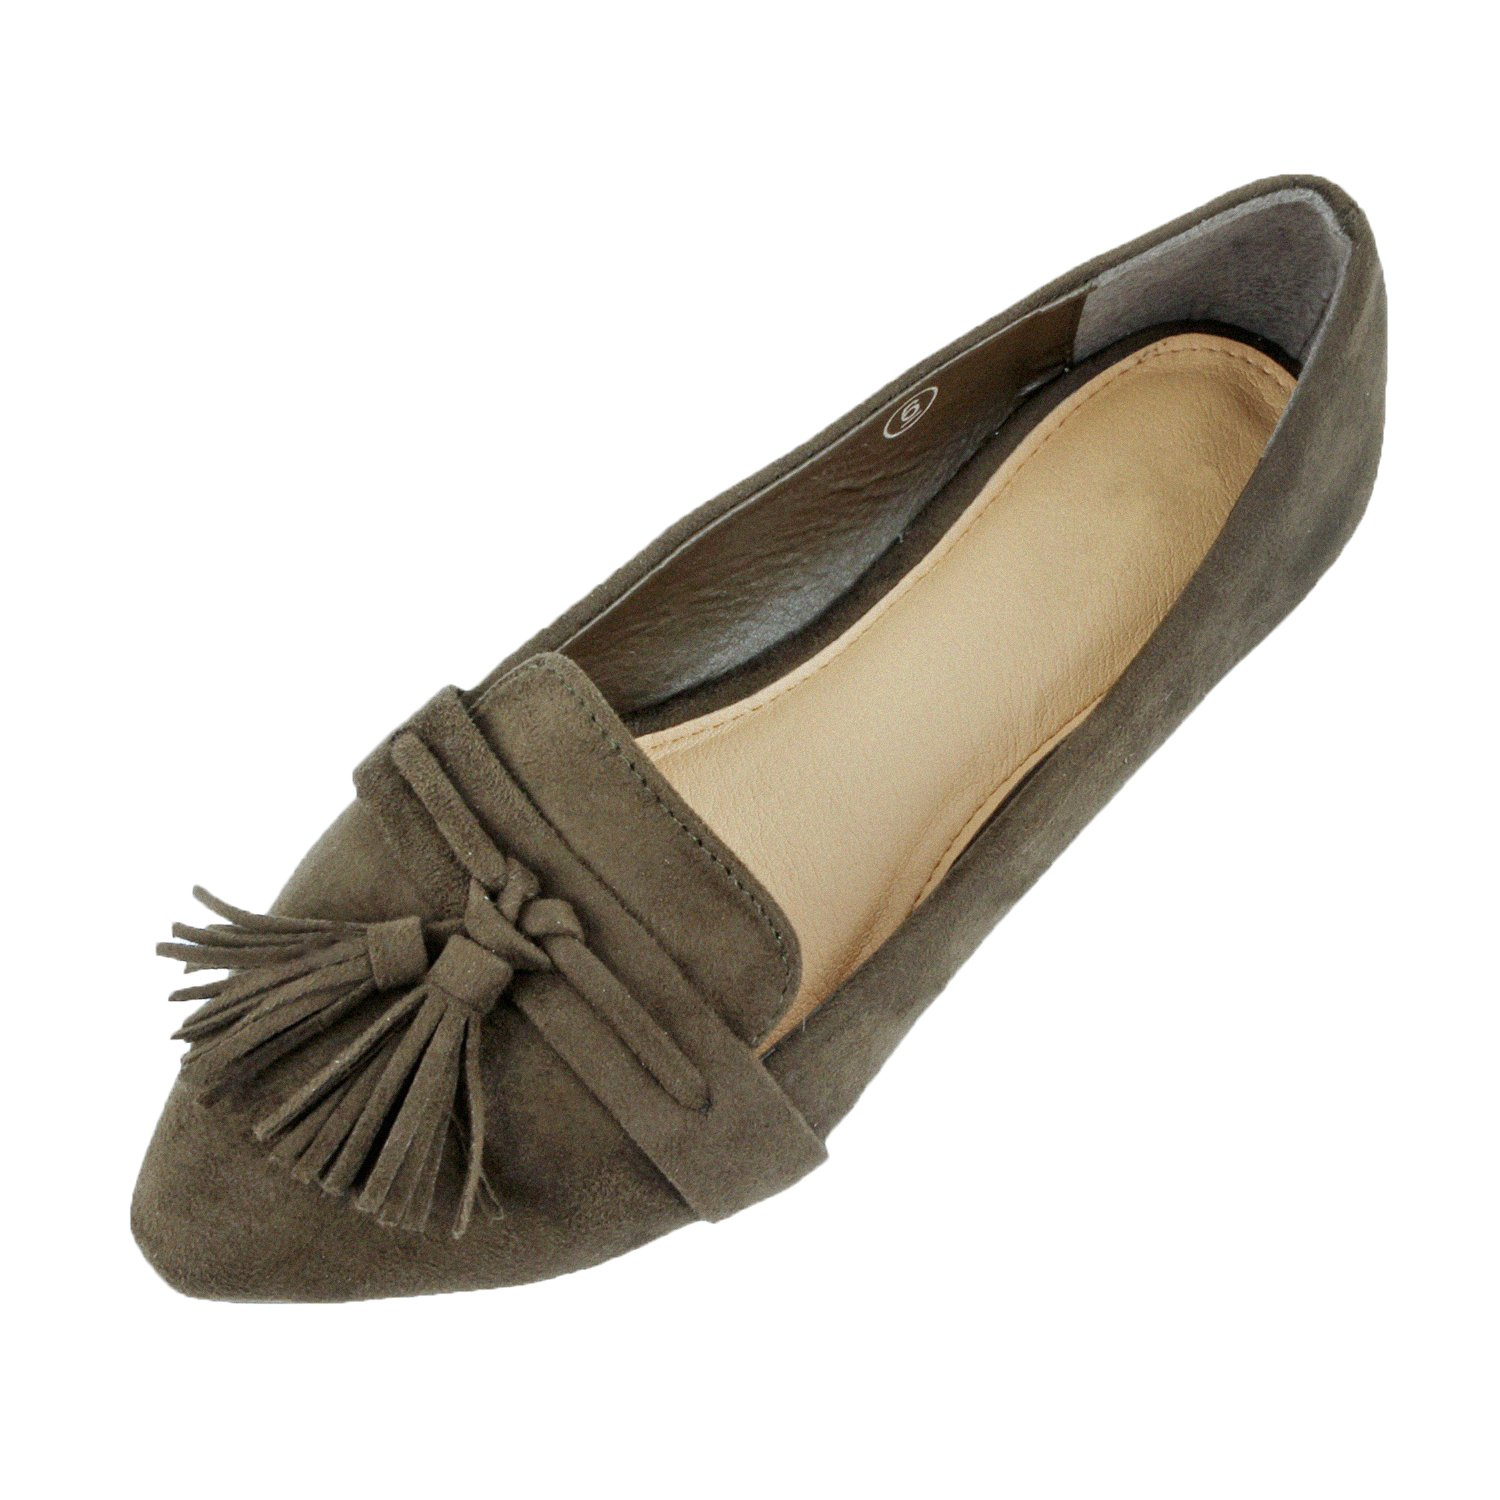 Guilty Heart - Womens Tassel Slip On Suede Comfort Loafer Oxford Casual Flats Flats, Olive Suede, 10 B(M) US by Guilty Heart